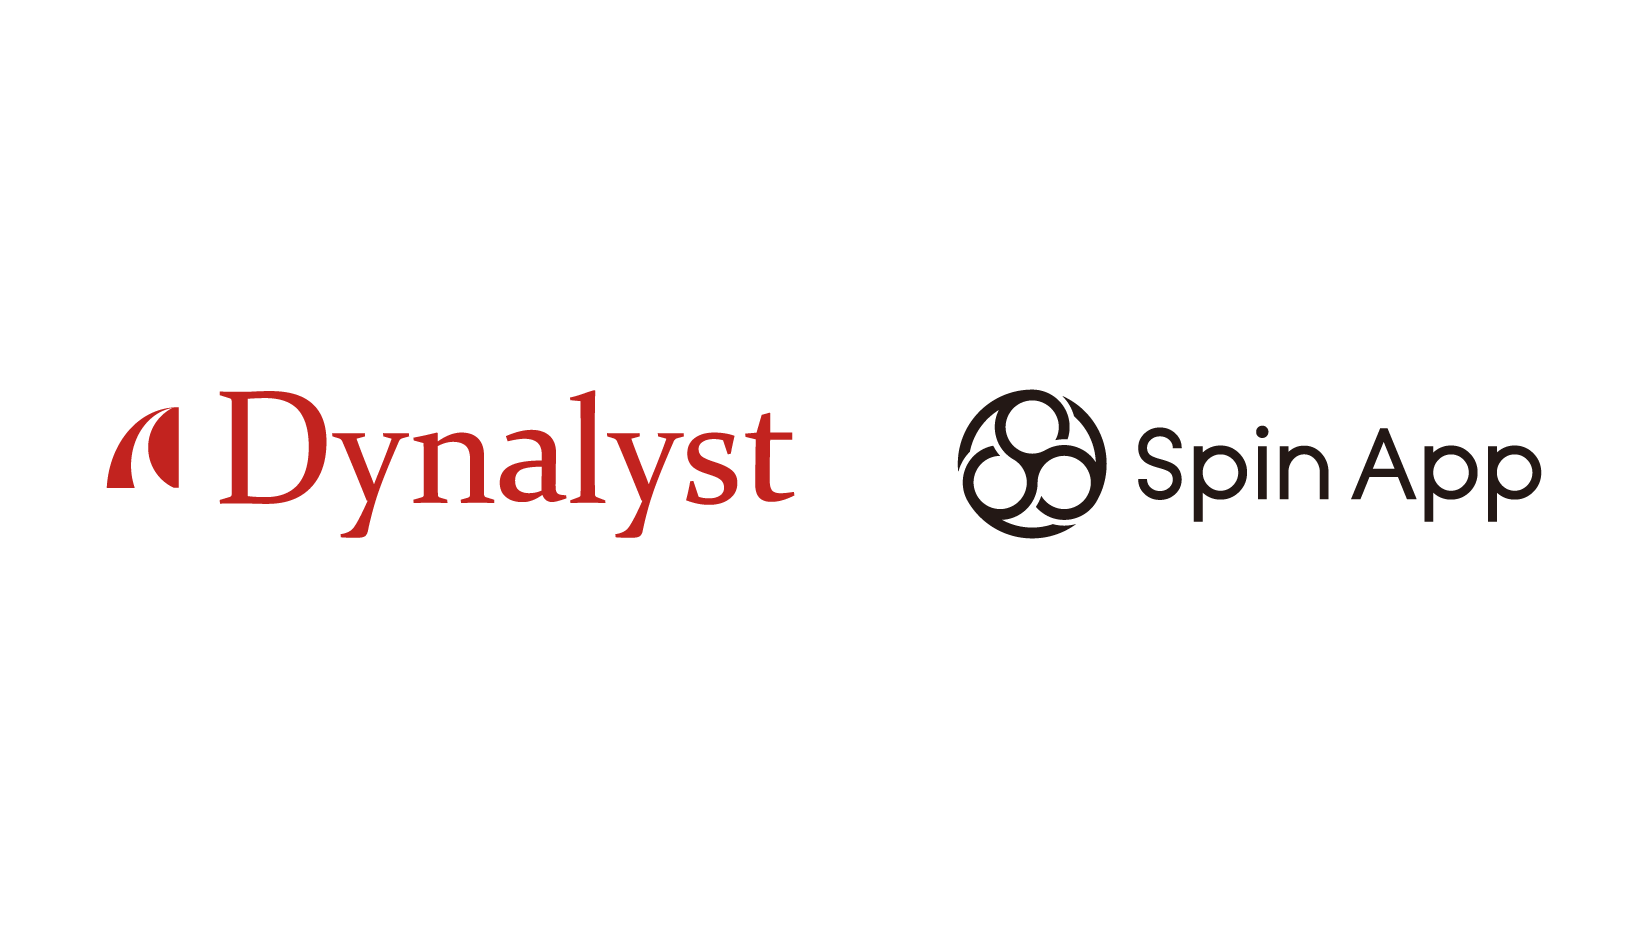 Dynalyst for Games Spin App